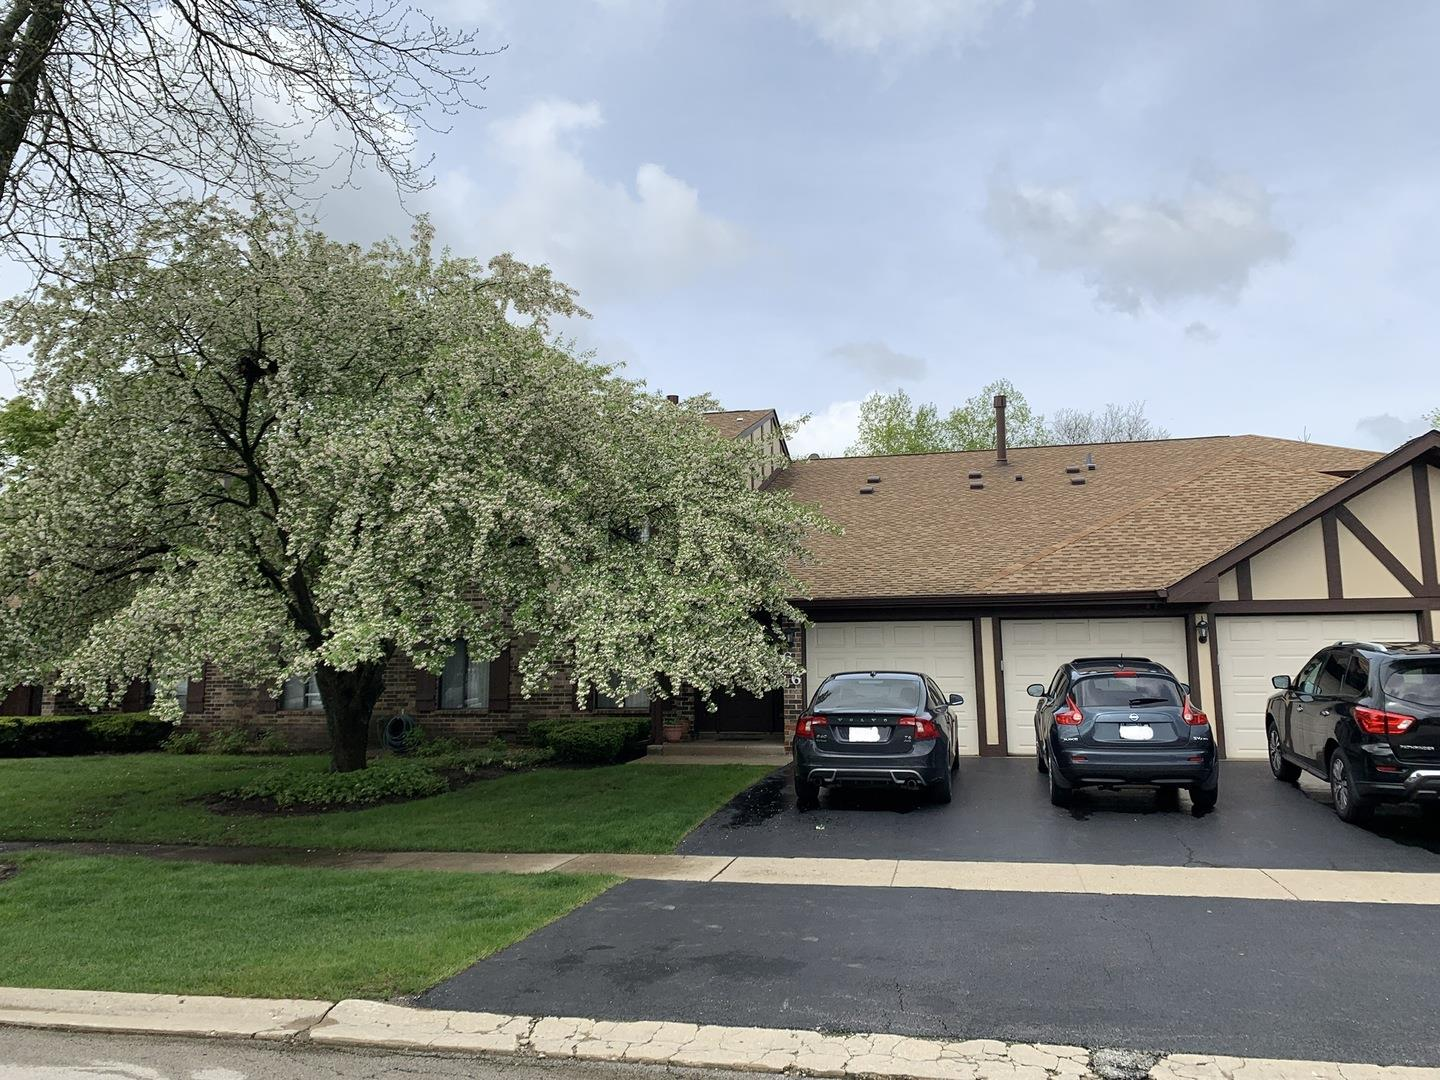 676 W CROSS CREEK Drive #B2, Roselle, IL 60172 - #: 10819770